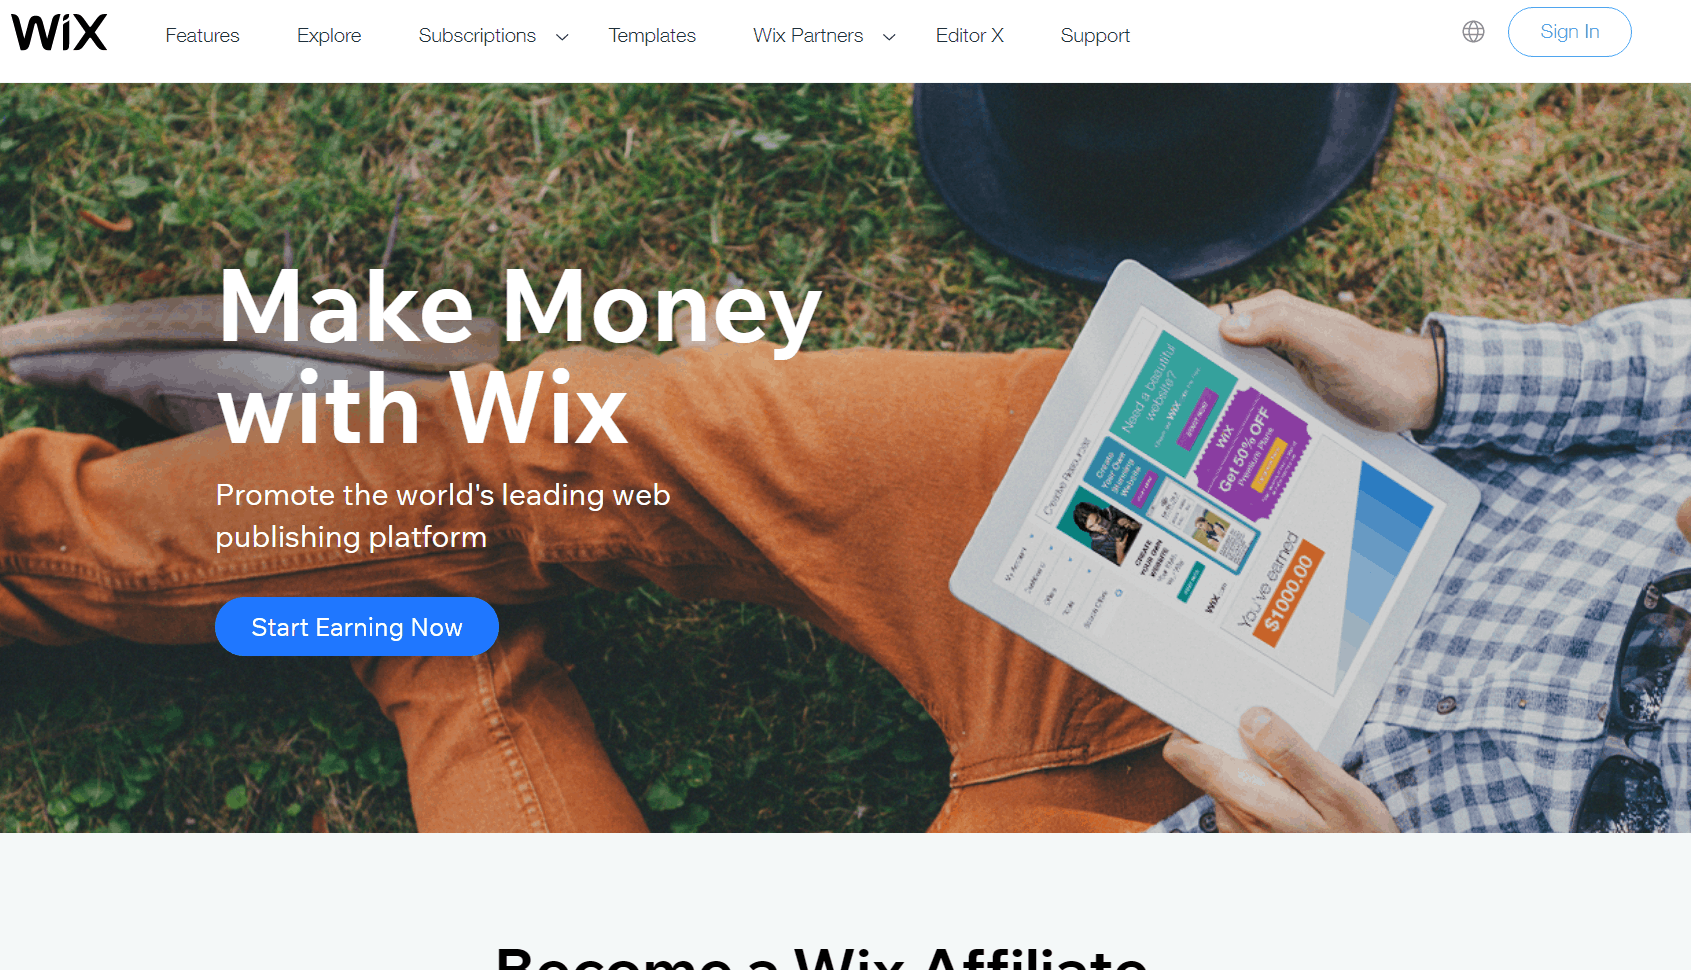 Wix website preview